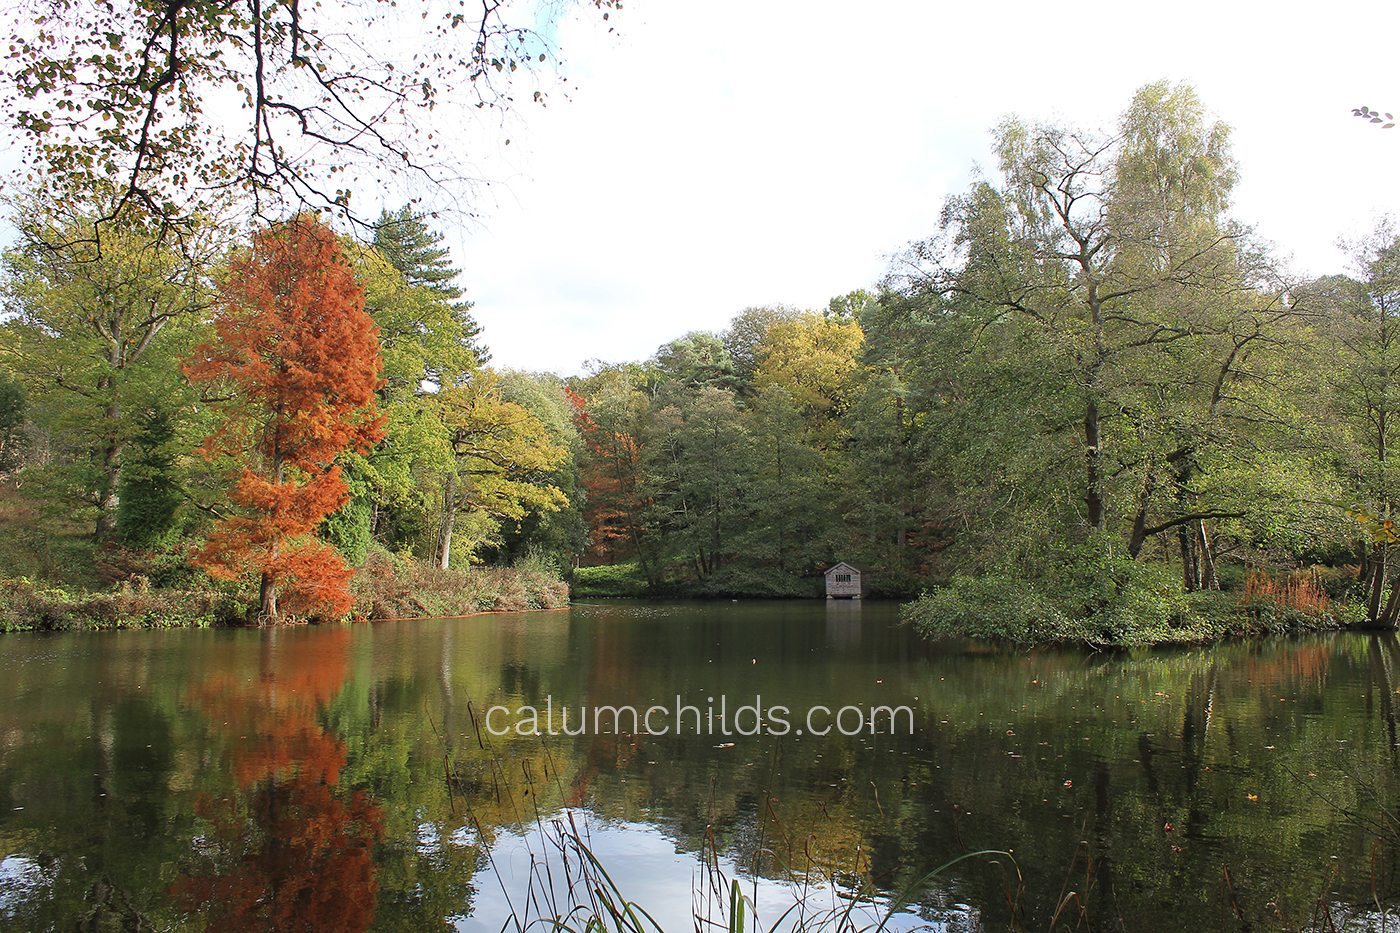 Trees with their orange, green and yellow leaves sitting on the riverbank of a large lake.